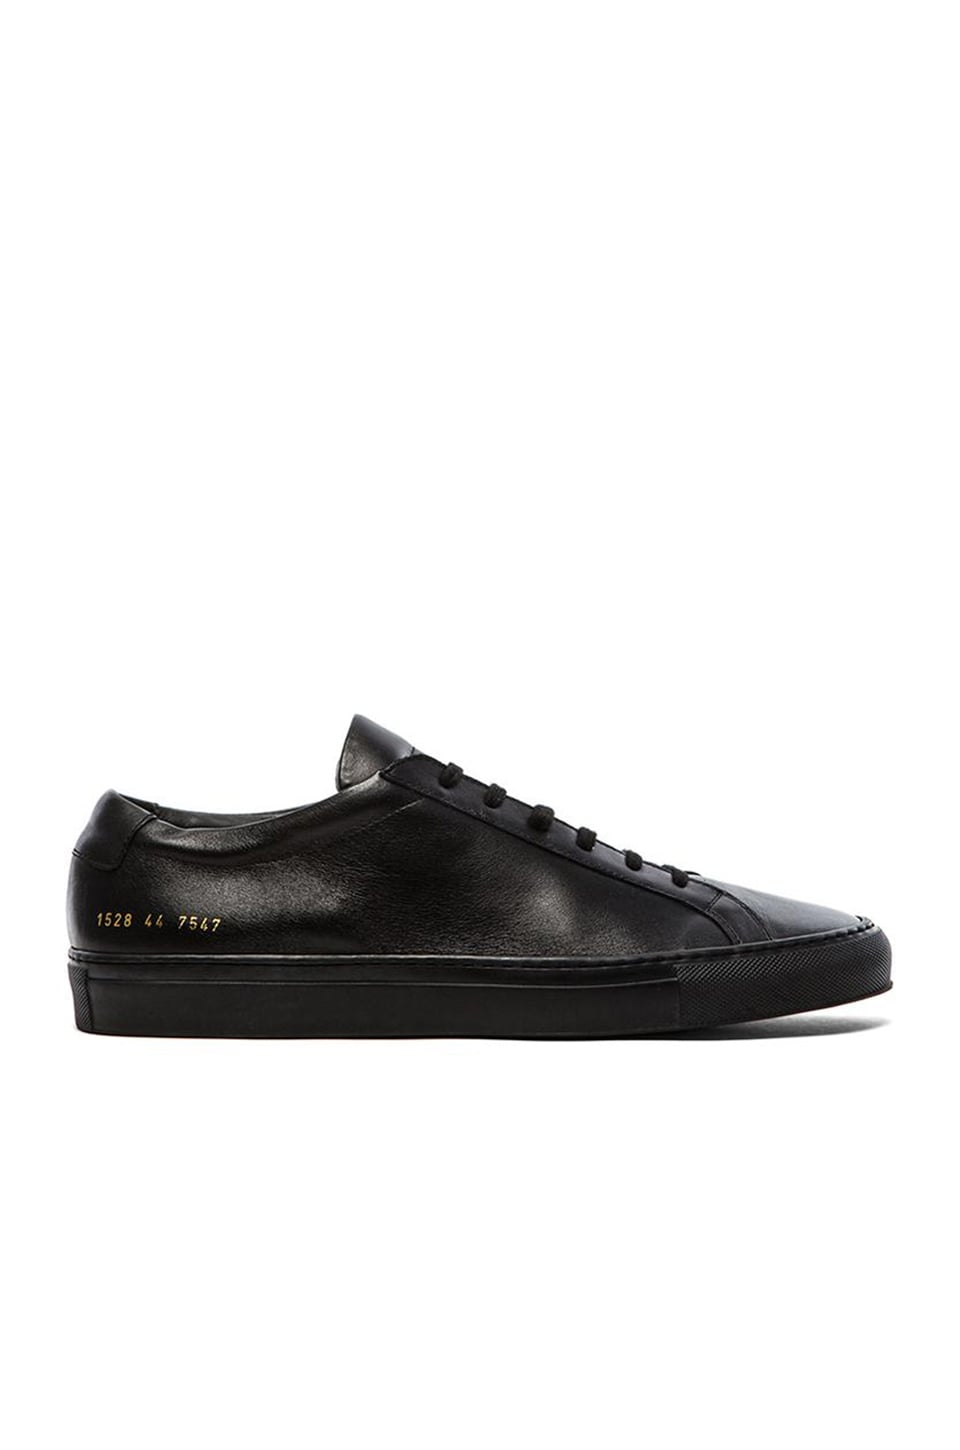 Common Projects Original Achilles Low in Black